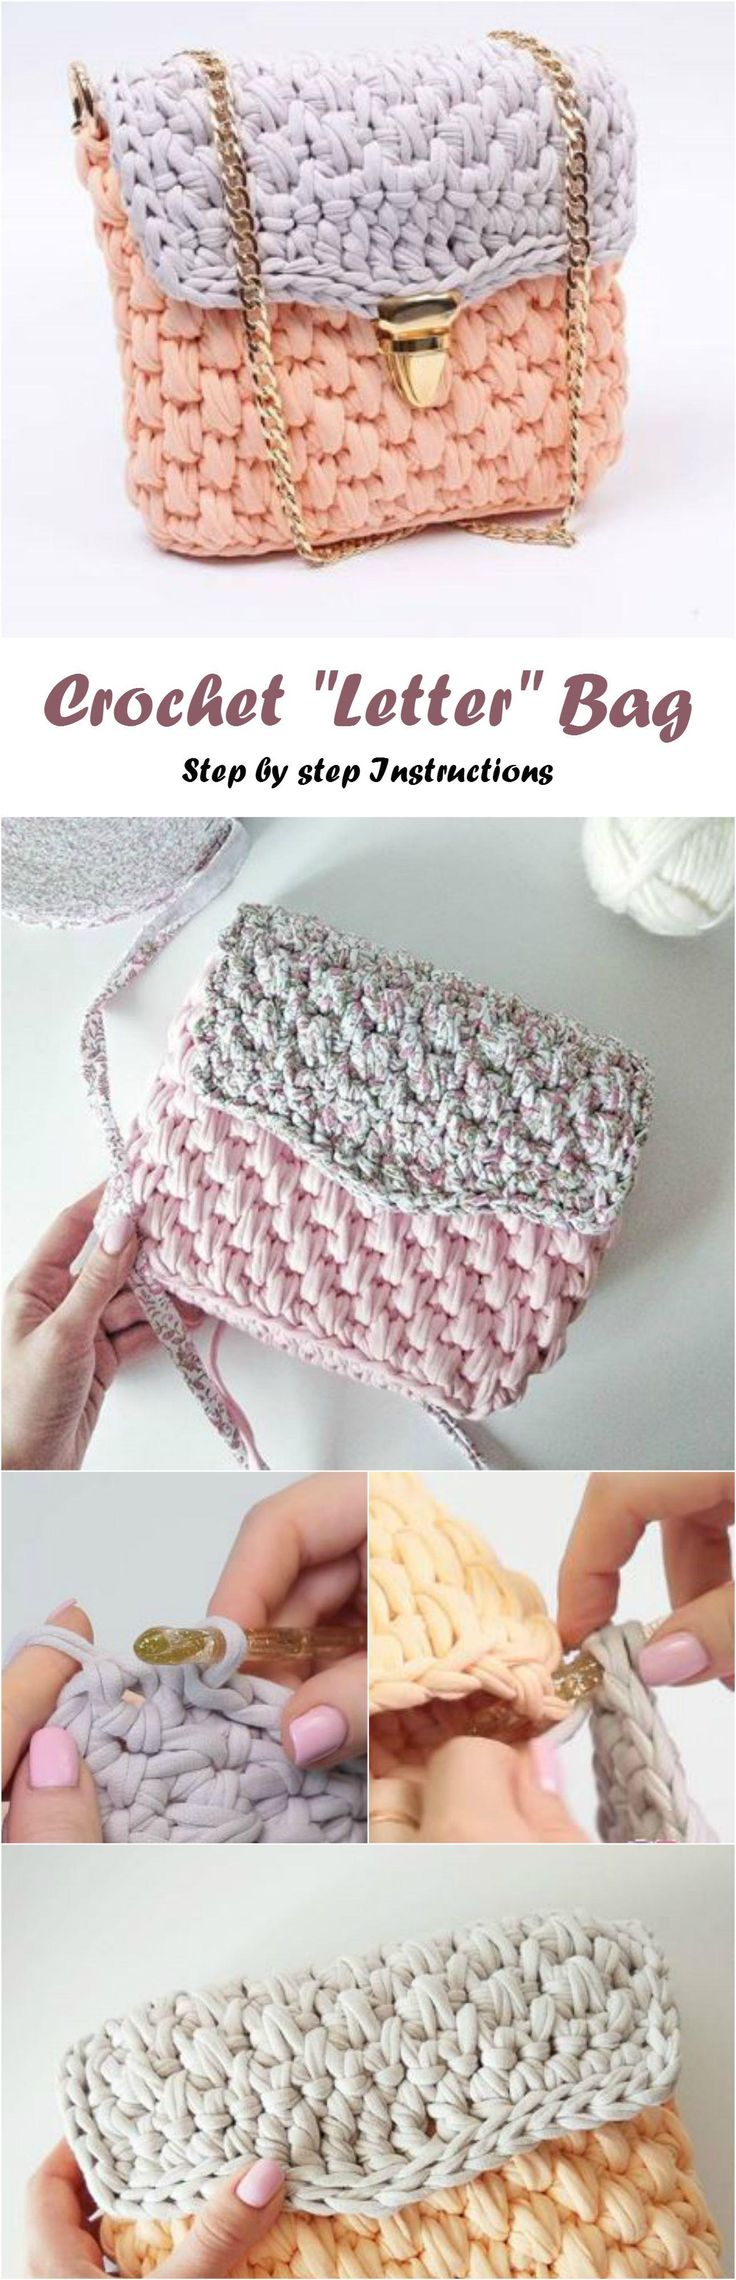 421 best crochet bags images on pinterest crochet bags crochet letter bag bankloansurffo Choice Image